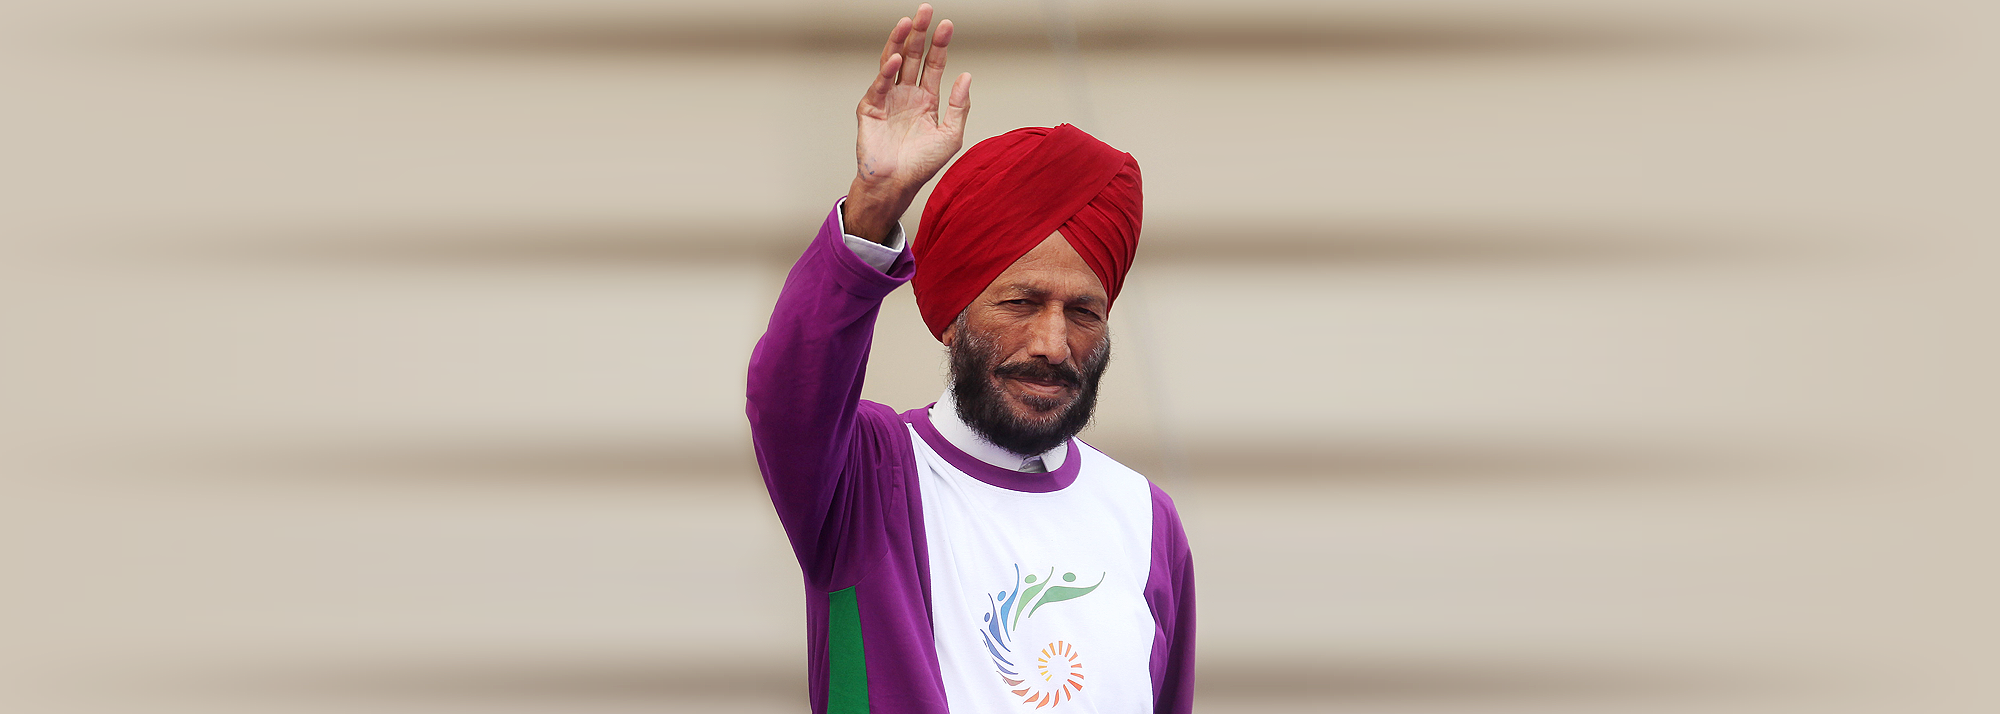 World Athletics is deeply saddened to hear that India's three-time Asian Games champion Milkha Singh died on Friday (18) at the age of 91 due to Covid-19 complications.